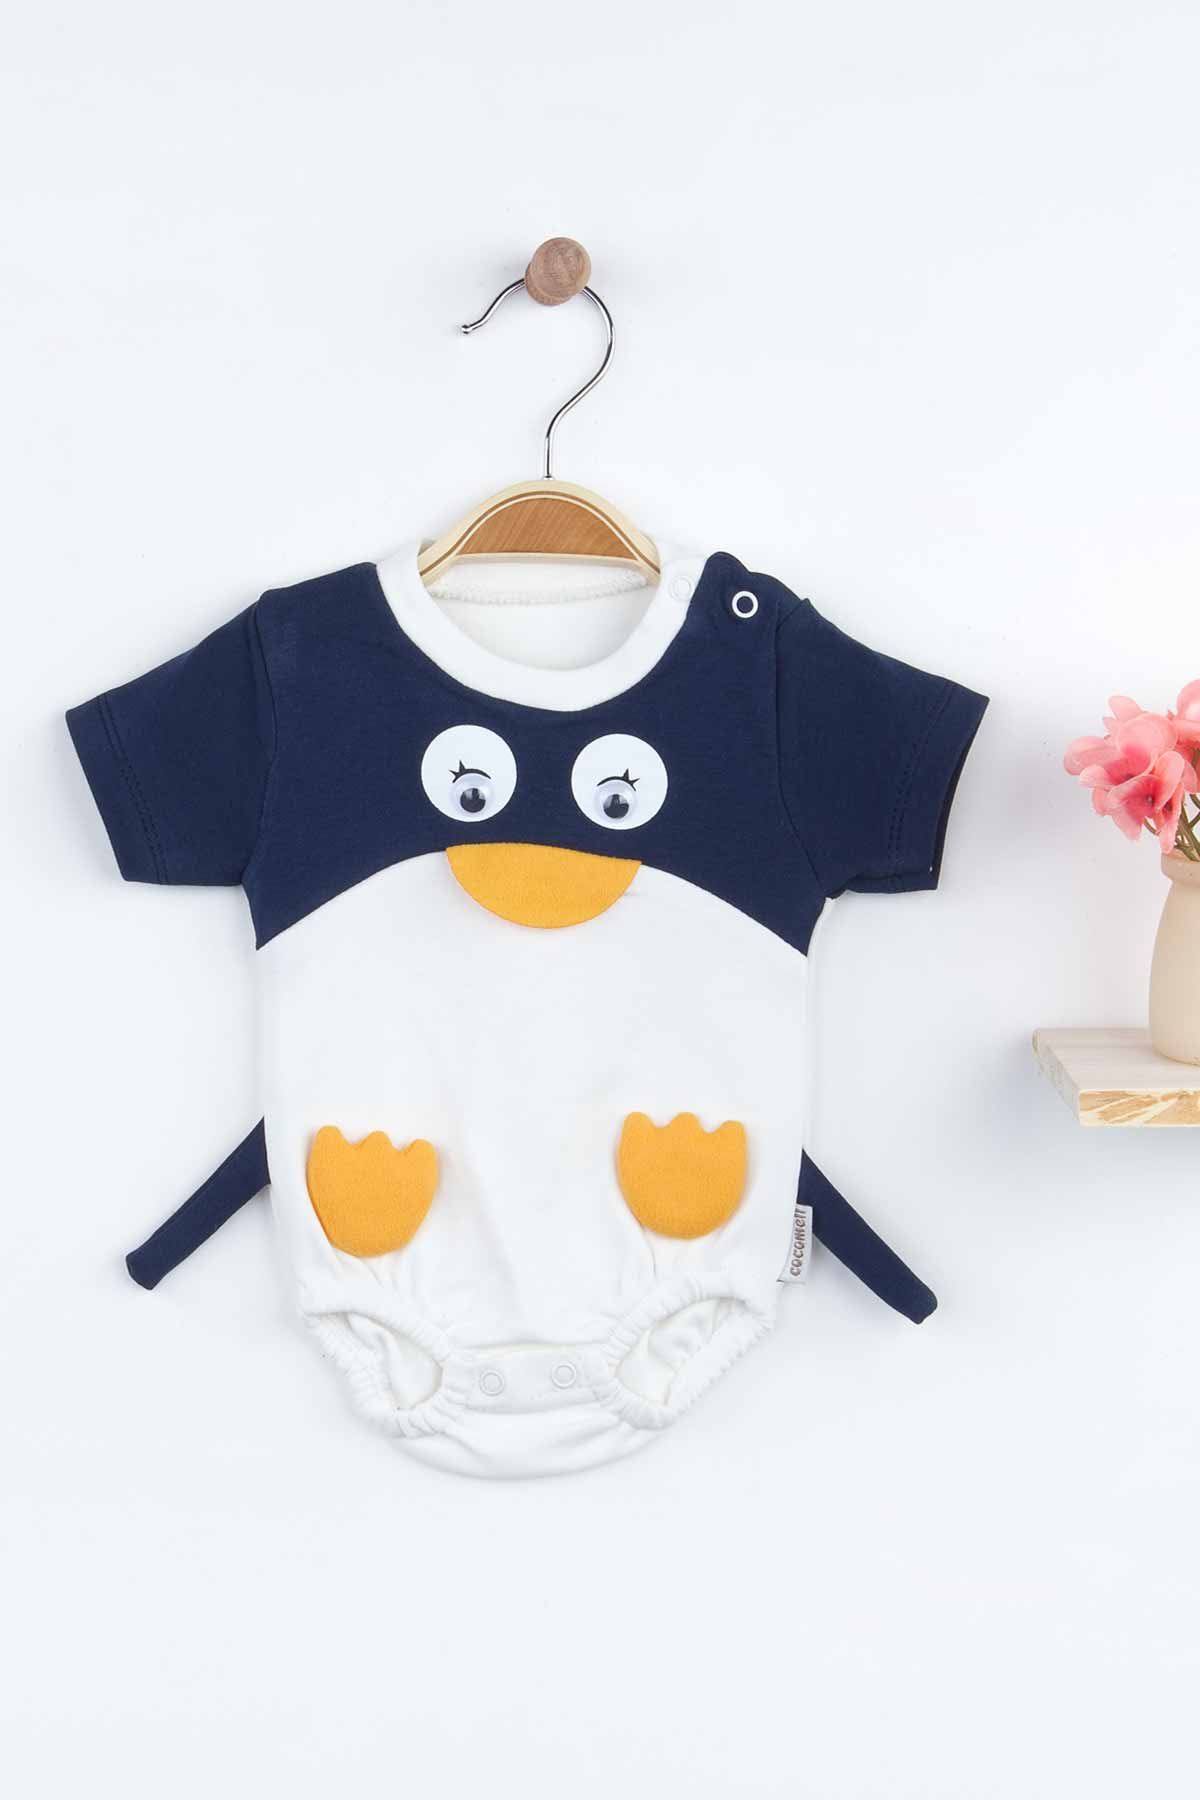 Navy Blue Penguin Baby Boy Rompers Fashion 2021 New Season Style Babies Clothes Outfit Cotton Comfortable Underwear for Boys Baby